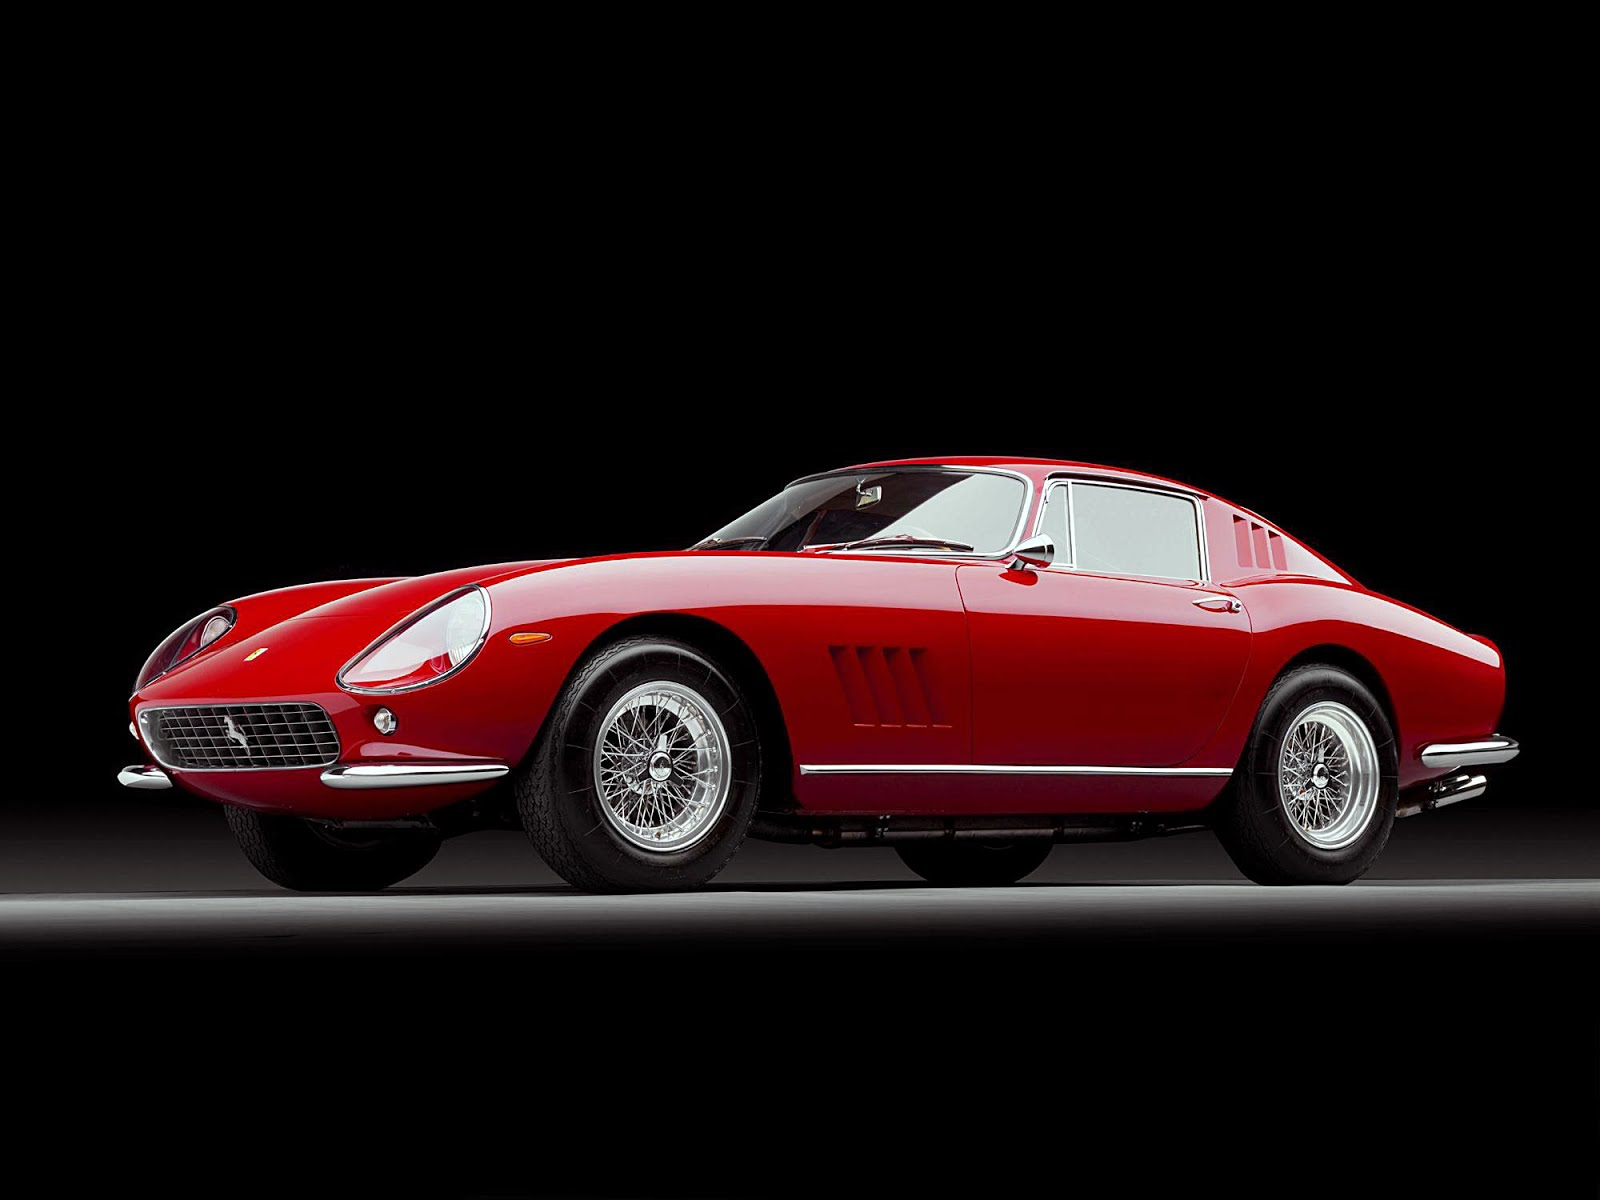 jake 39 s car world miles davis 1967 ferrari 275 gtb 4. Black Bedroom Furniture Sets. Home Design Ideas